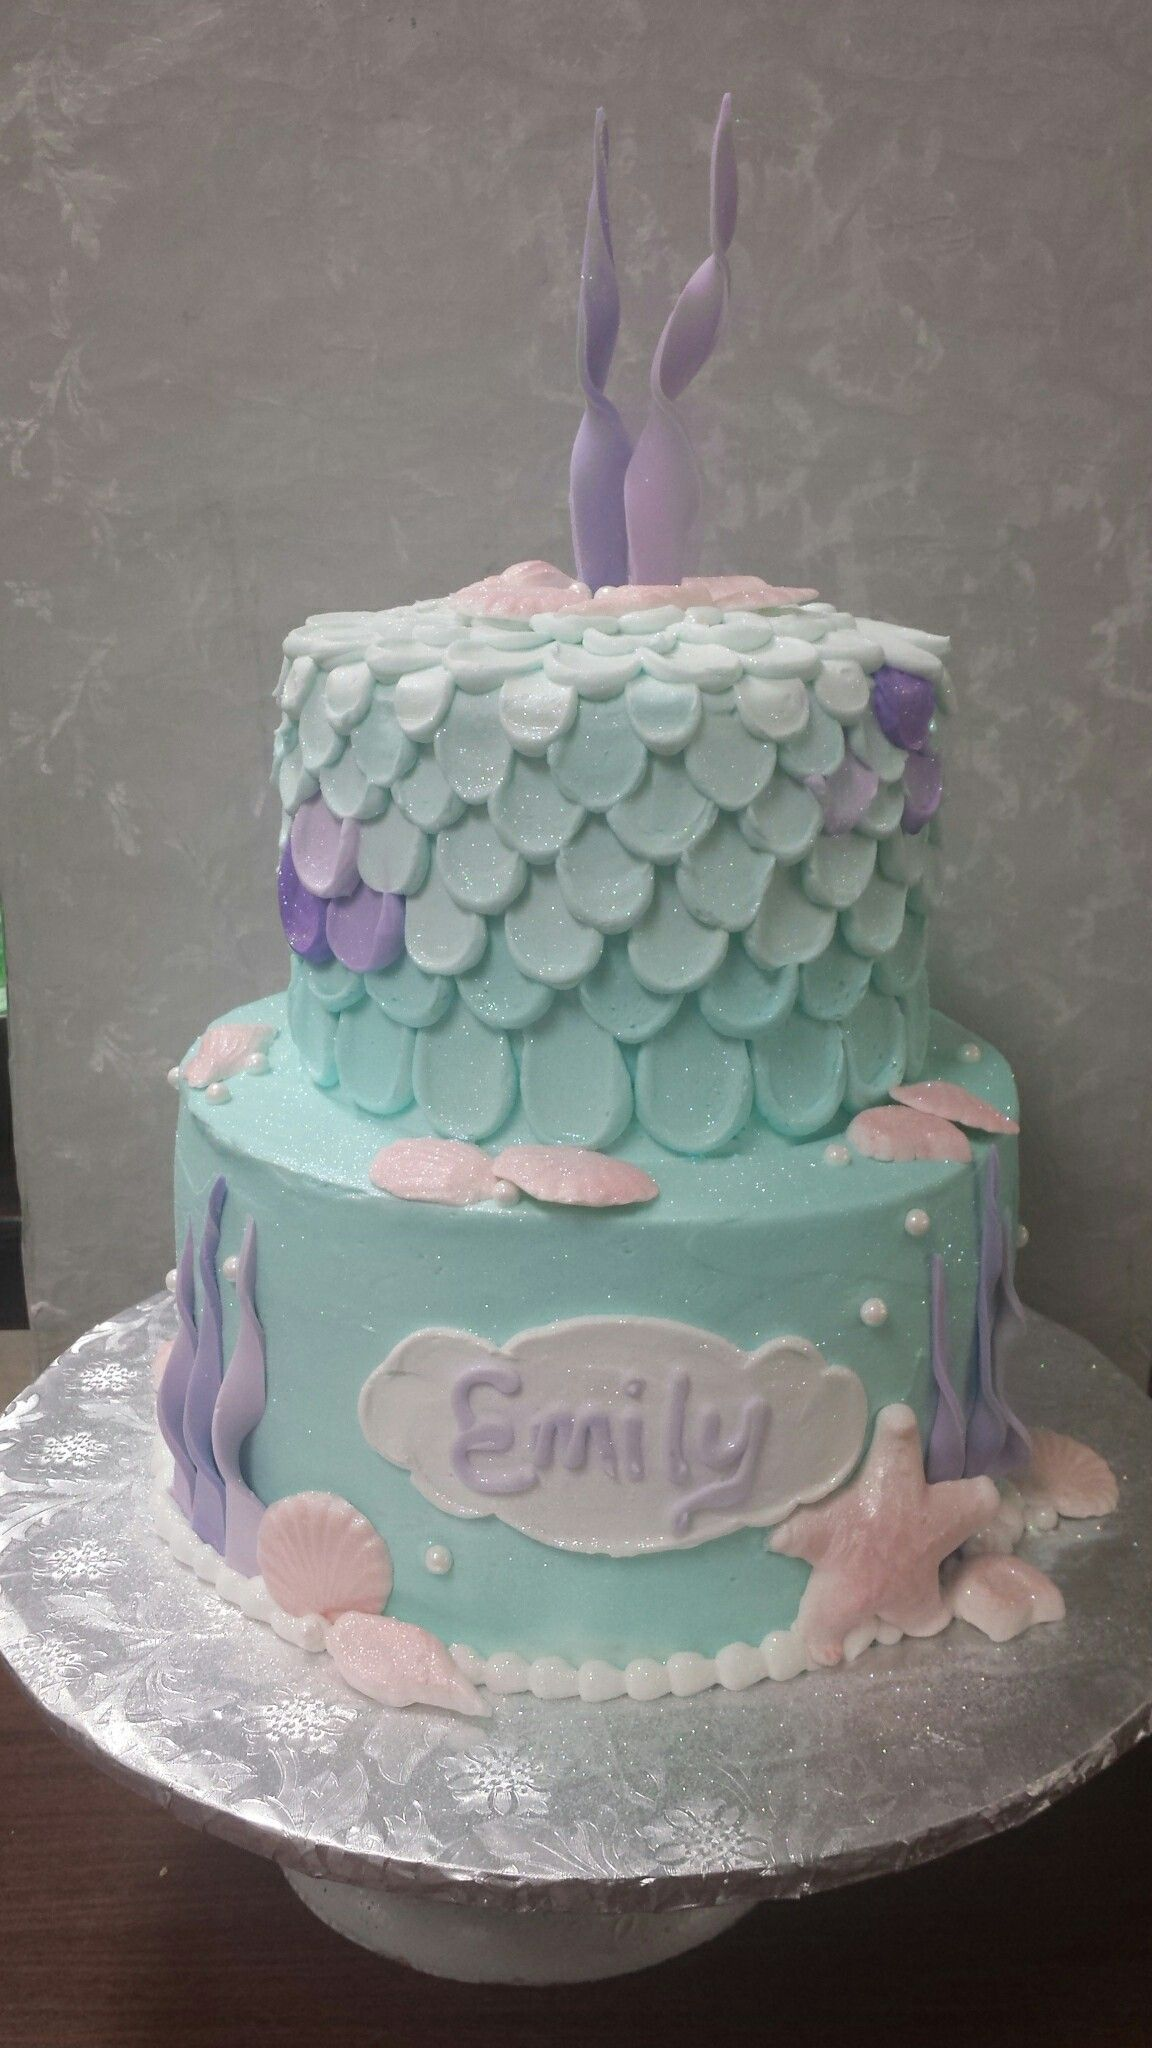 Mermaid themed birthday cake in aqua, pink, and lavender pastels.